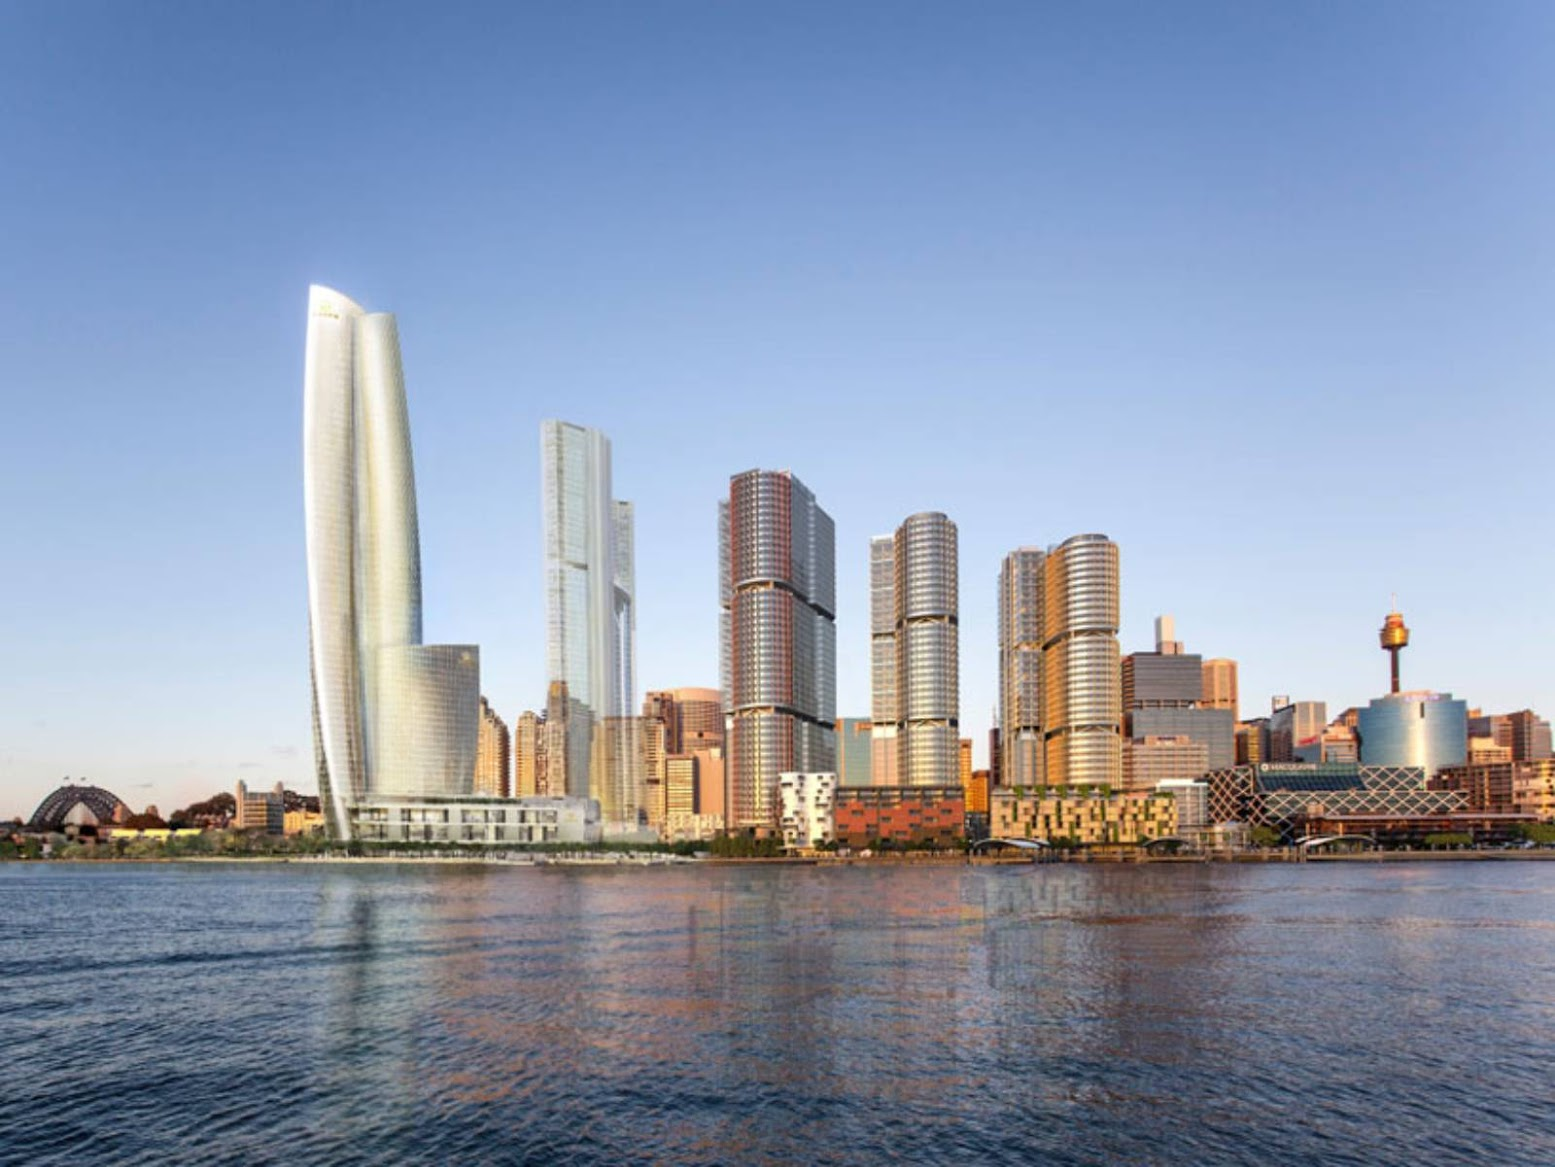 Sydney Nuovo Galles del Sud, Australia: [CROWN RESORTS HAS CHOSEN WILKINSON EYRE]